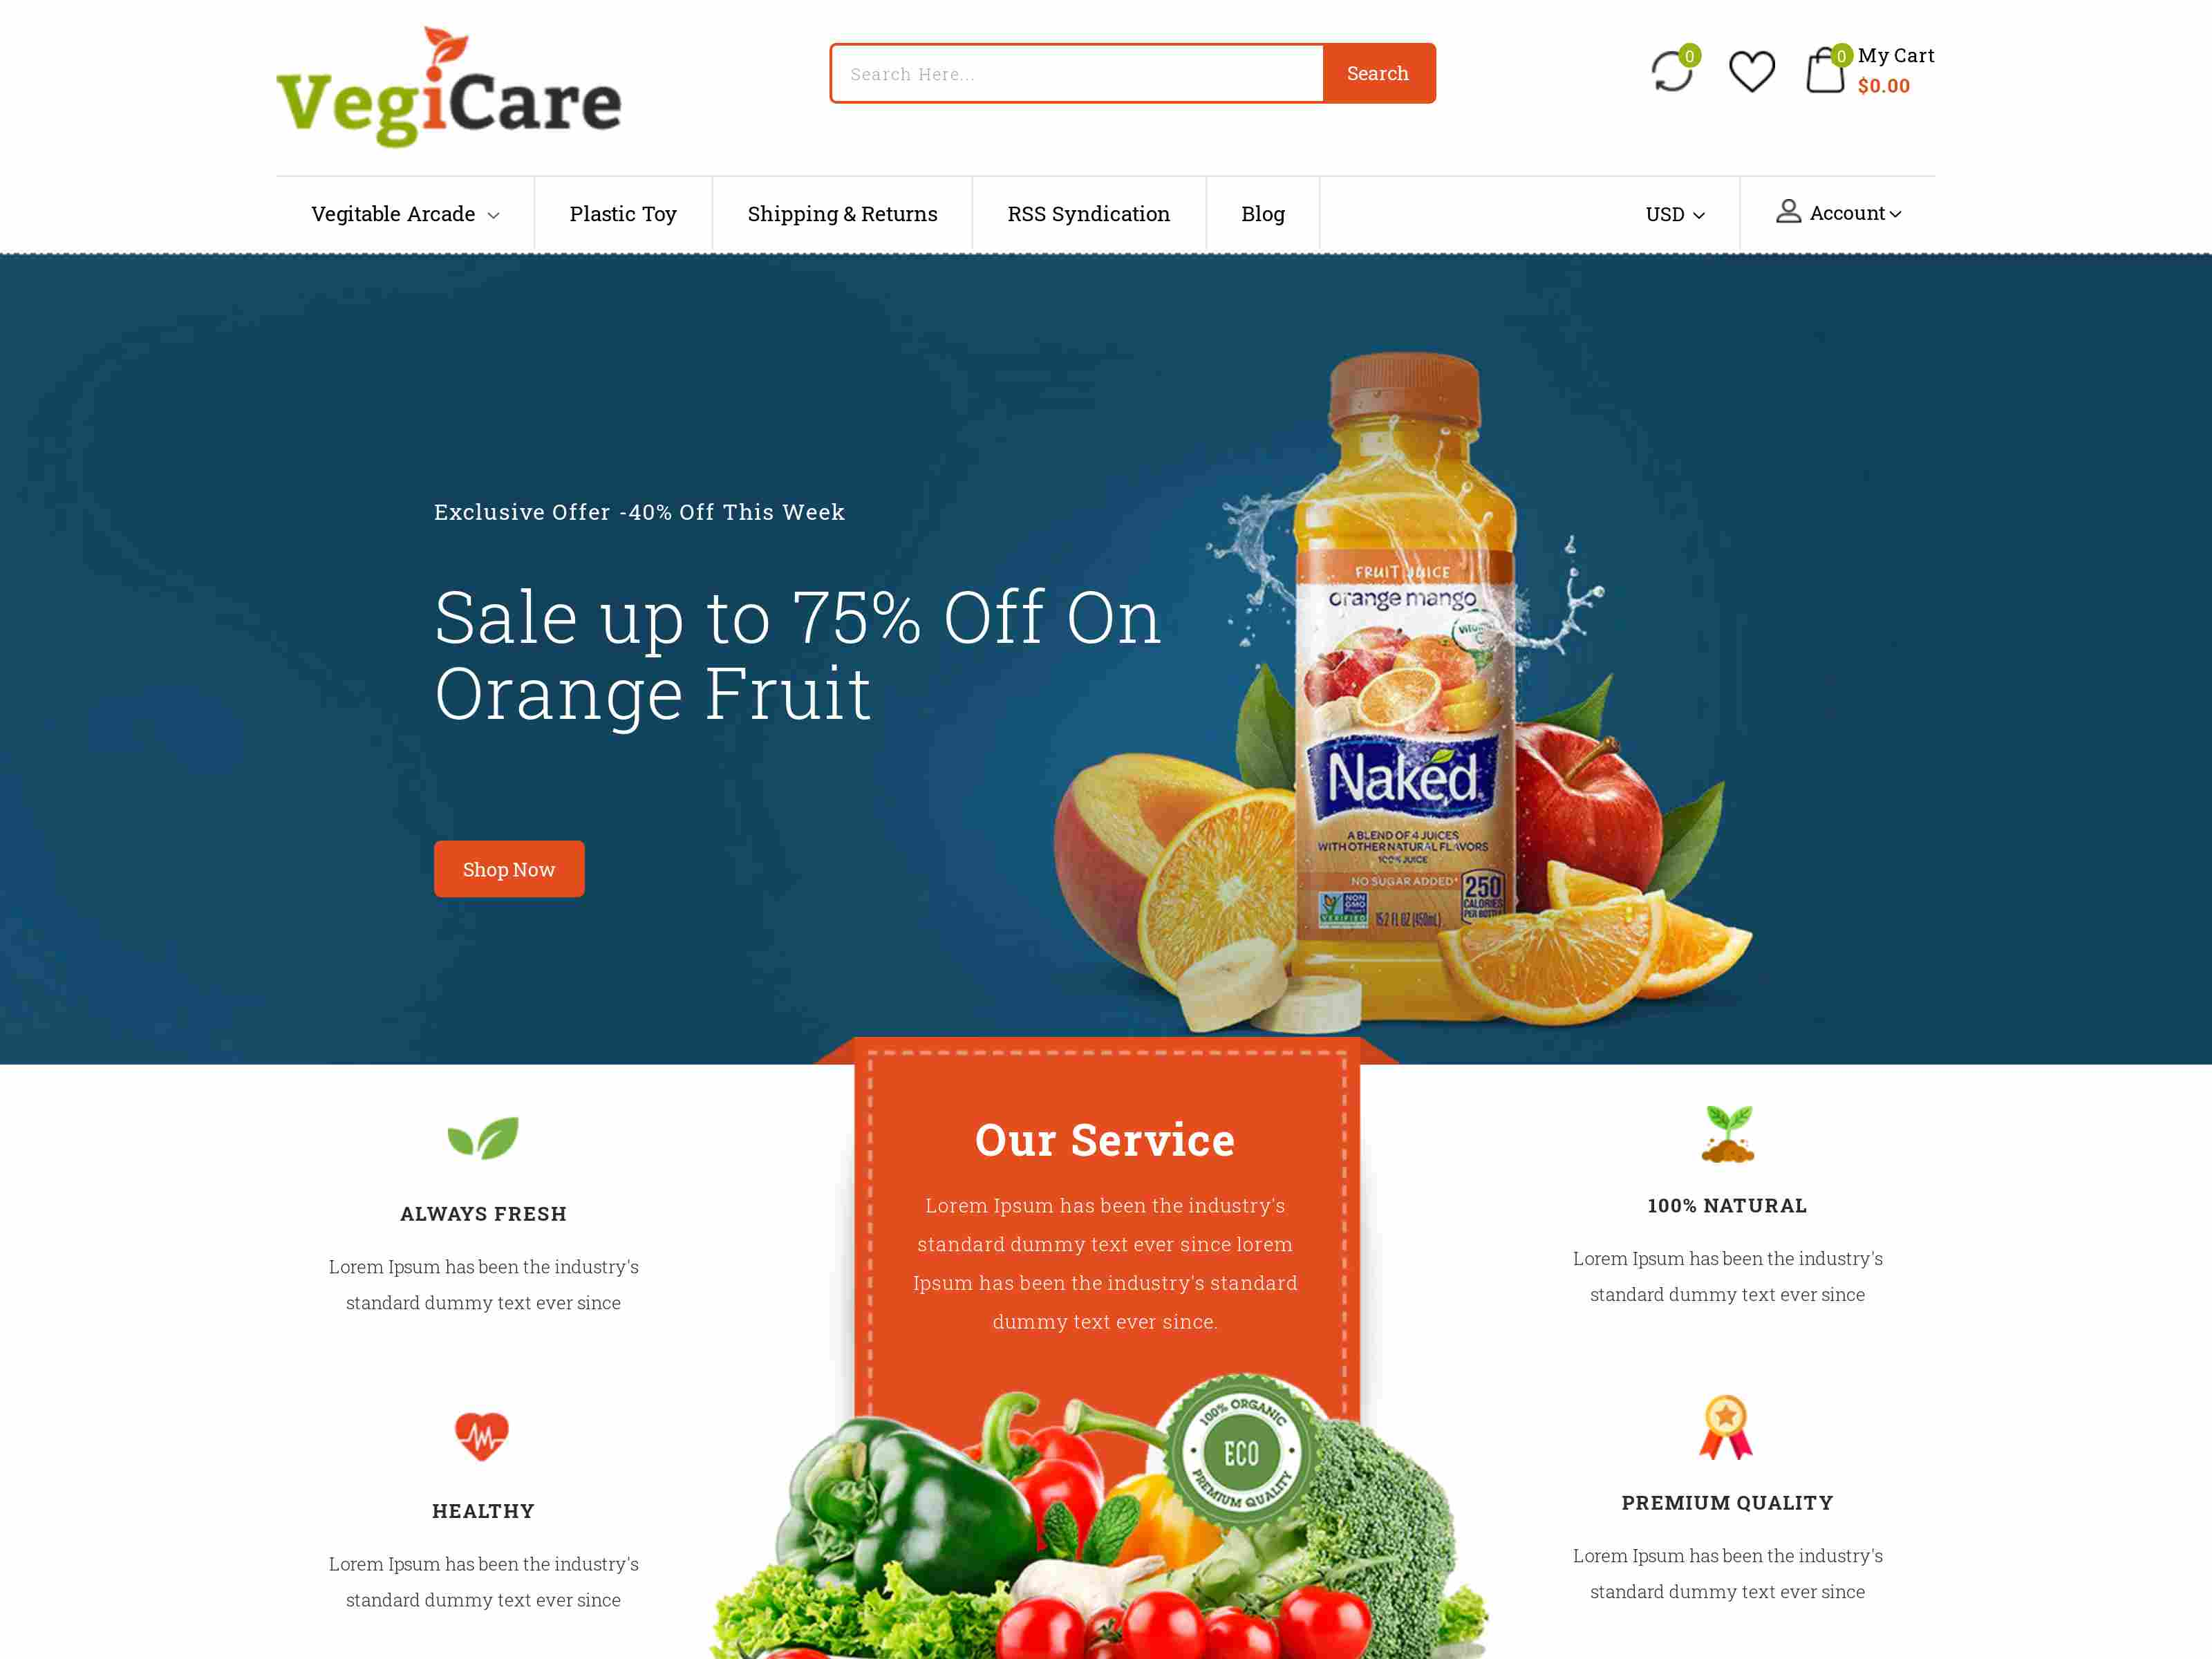 Best Premium Vegetable BigCommerce Themes